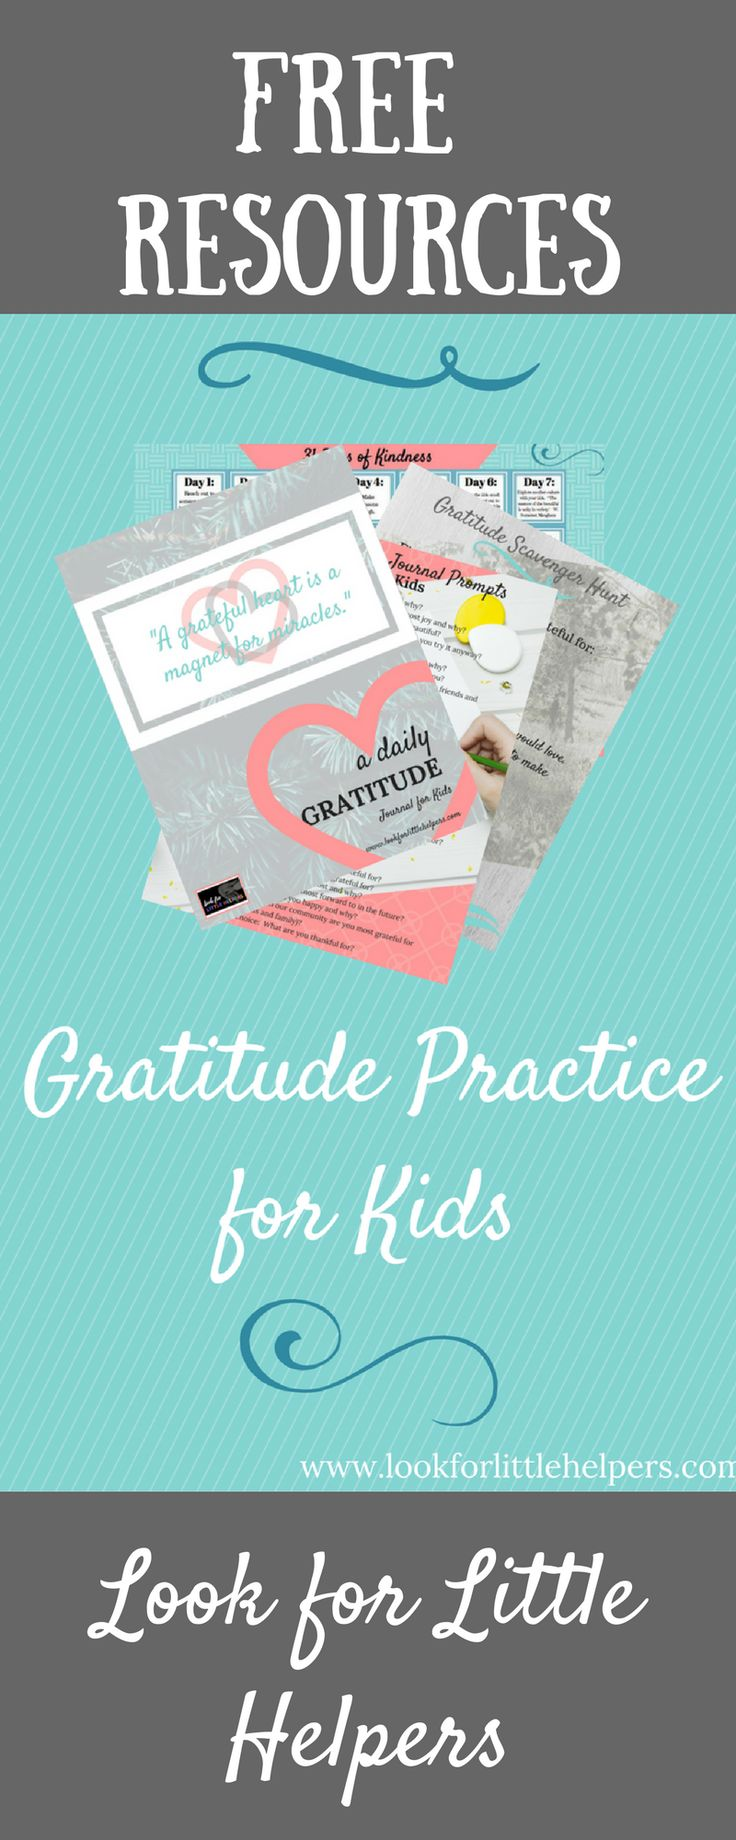 FREE resources to teach your kids to be grateful! And, a FREE random acts of kindness calendar printable, too!